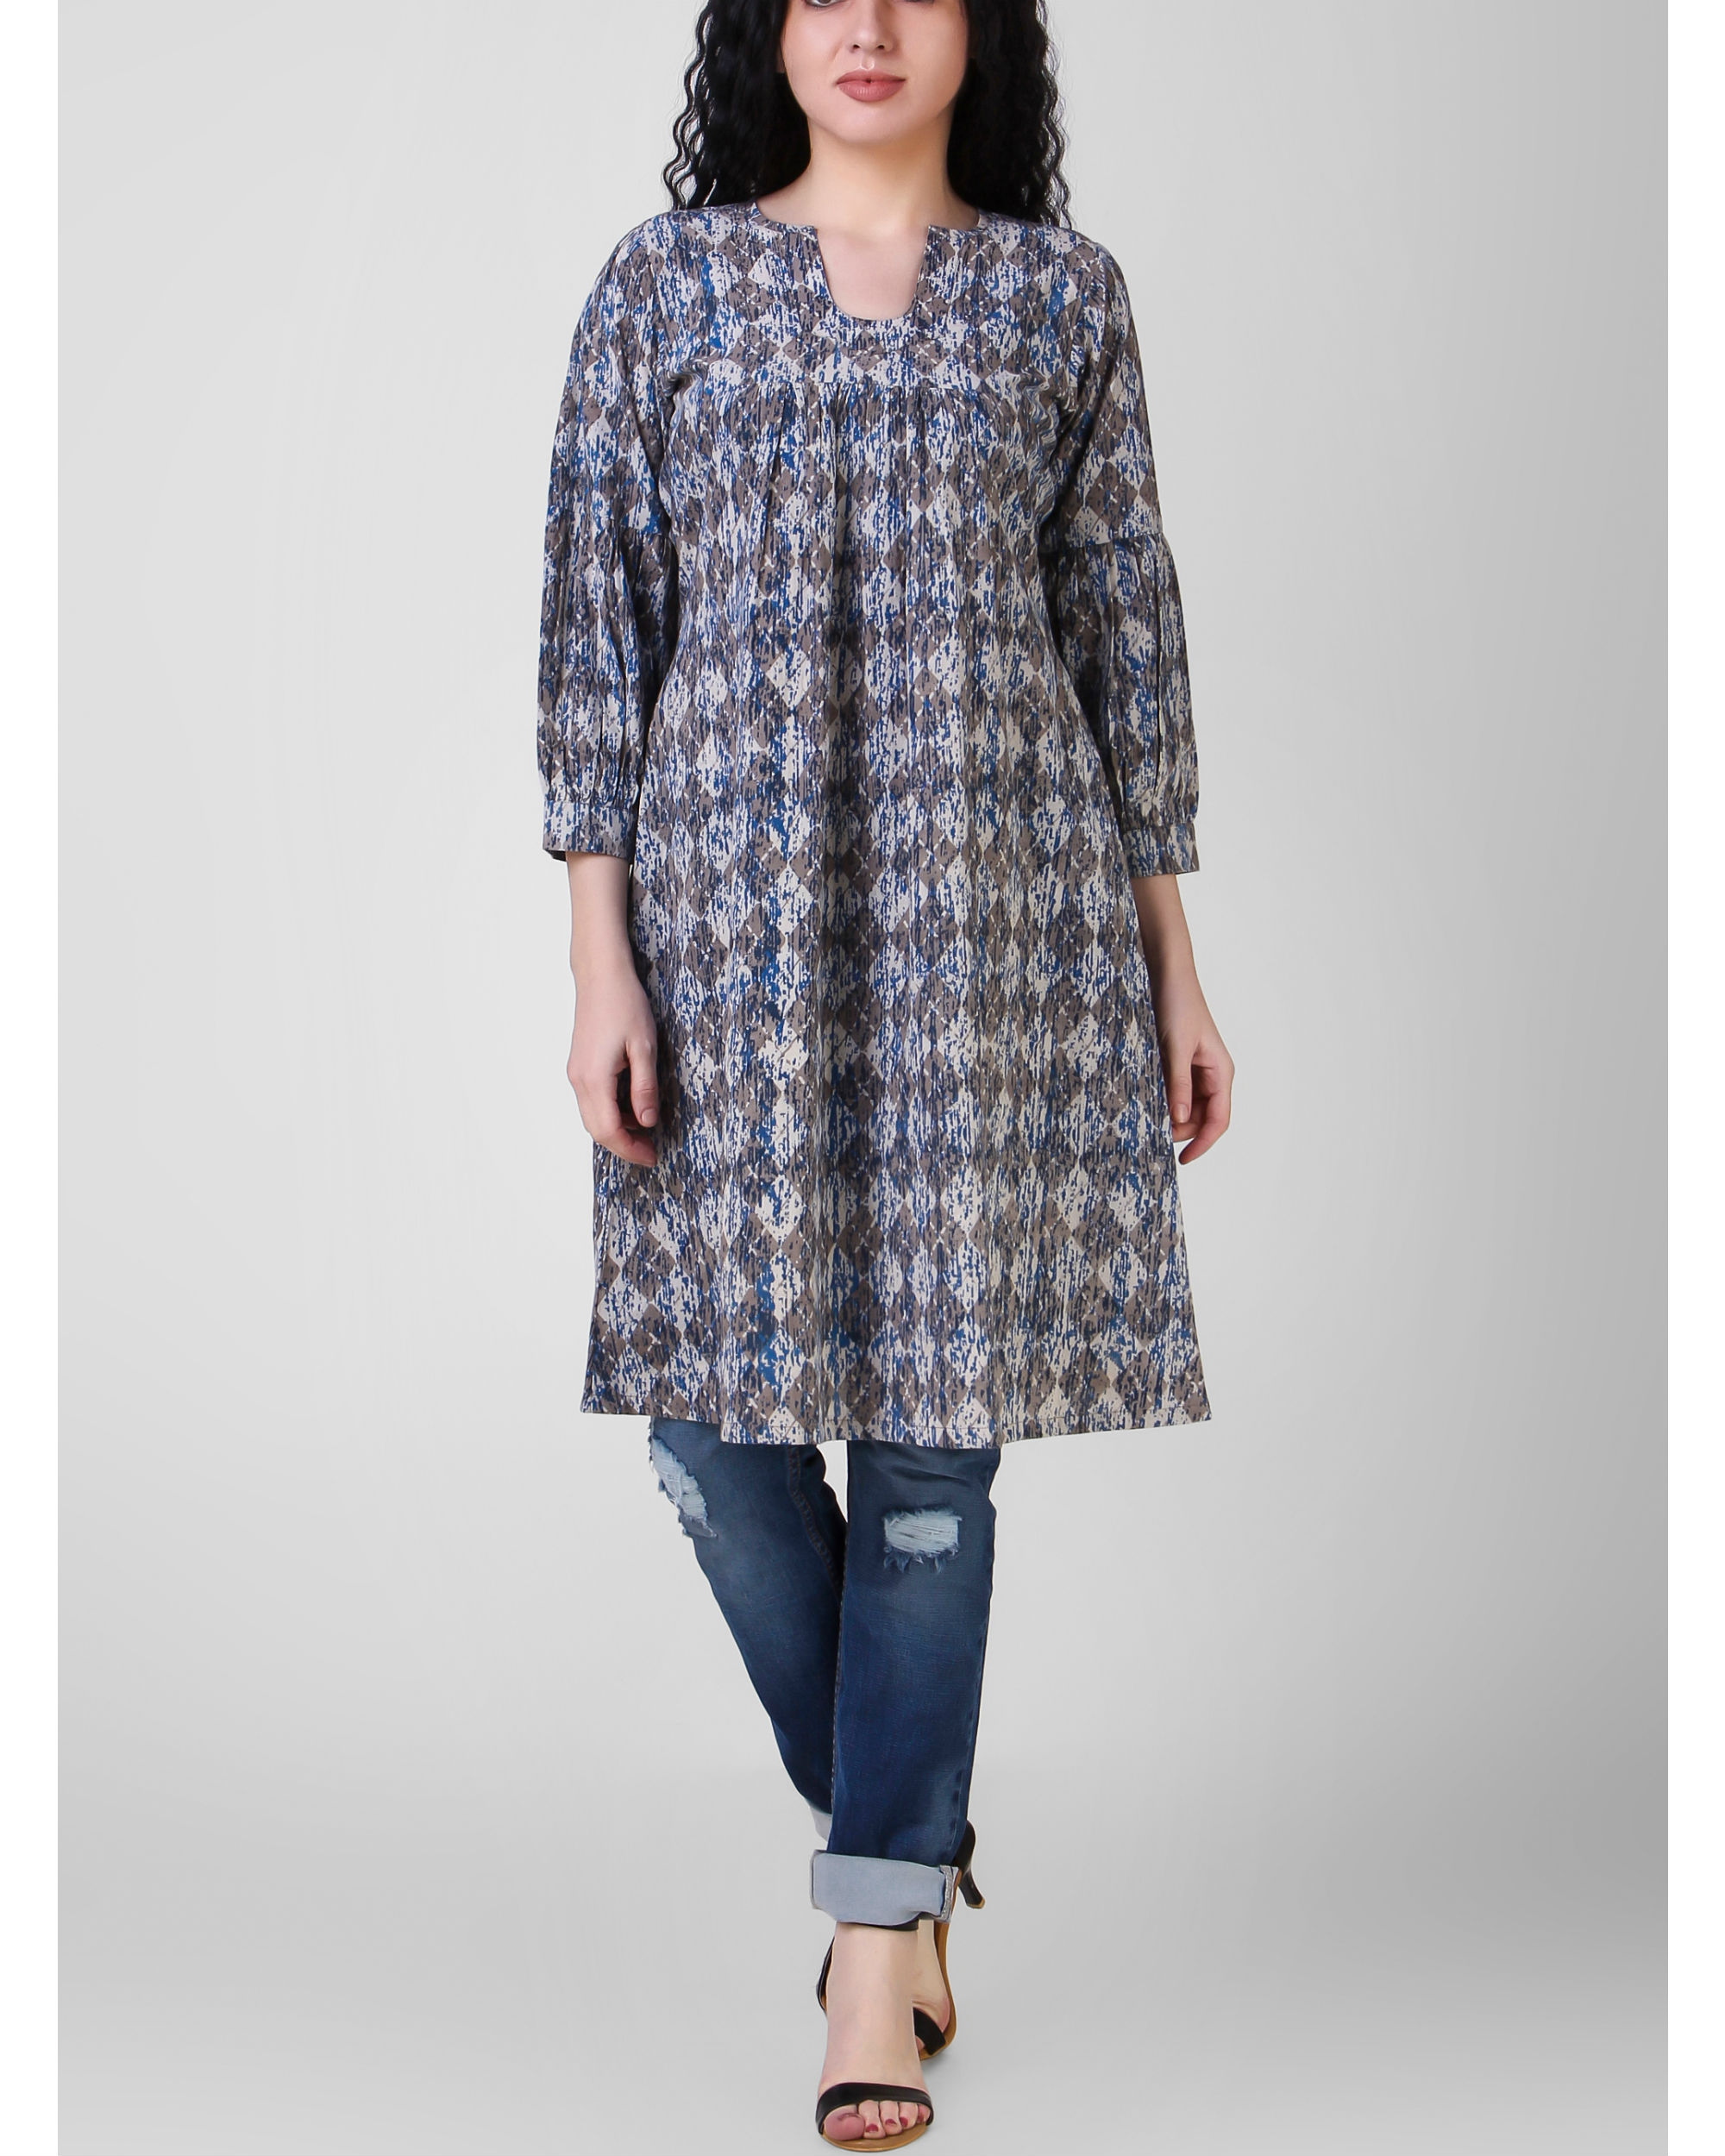 Indigo gathered tunic